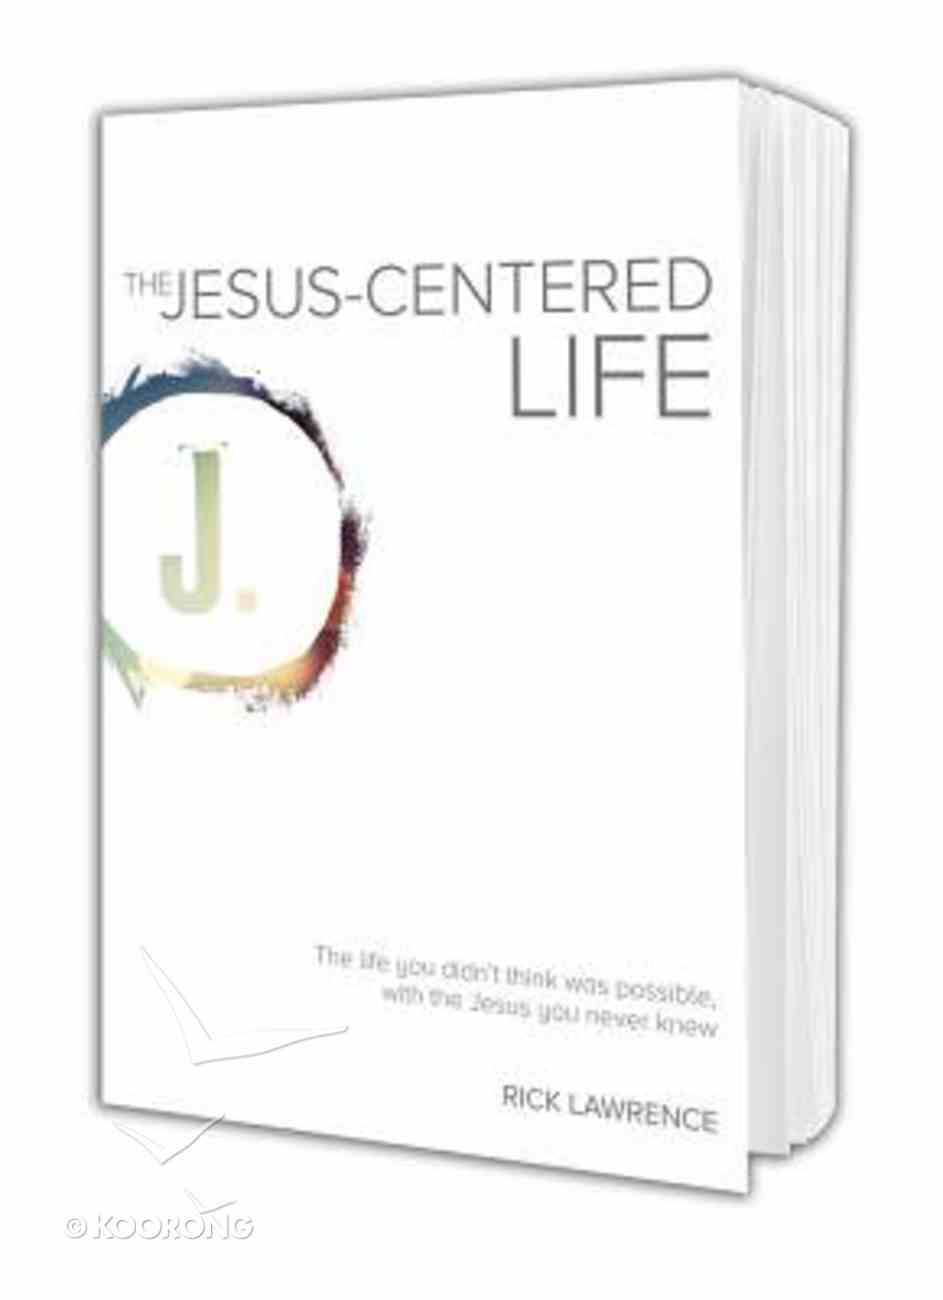 The Jesus-Centered Life: The Life You Didn't Think Possible, With the Jesus You Never Knew Paperback